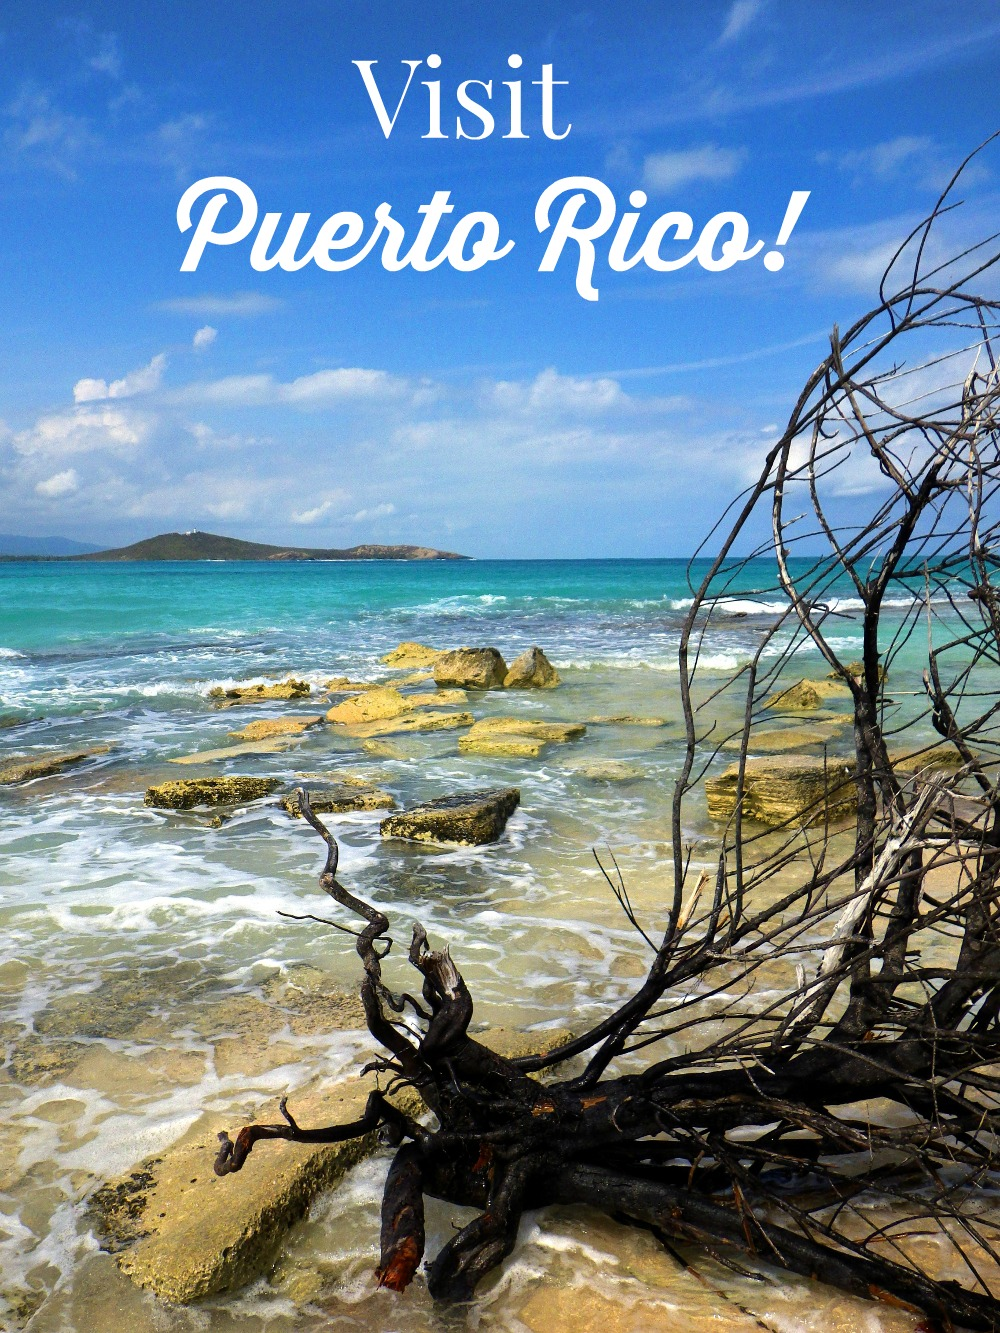 Puerto Rico vacation ideas! #travel #familytravel